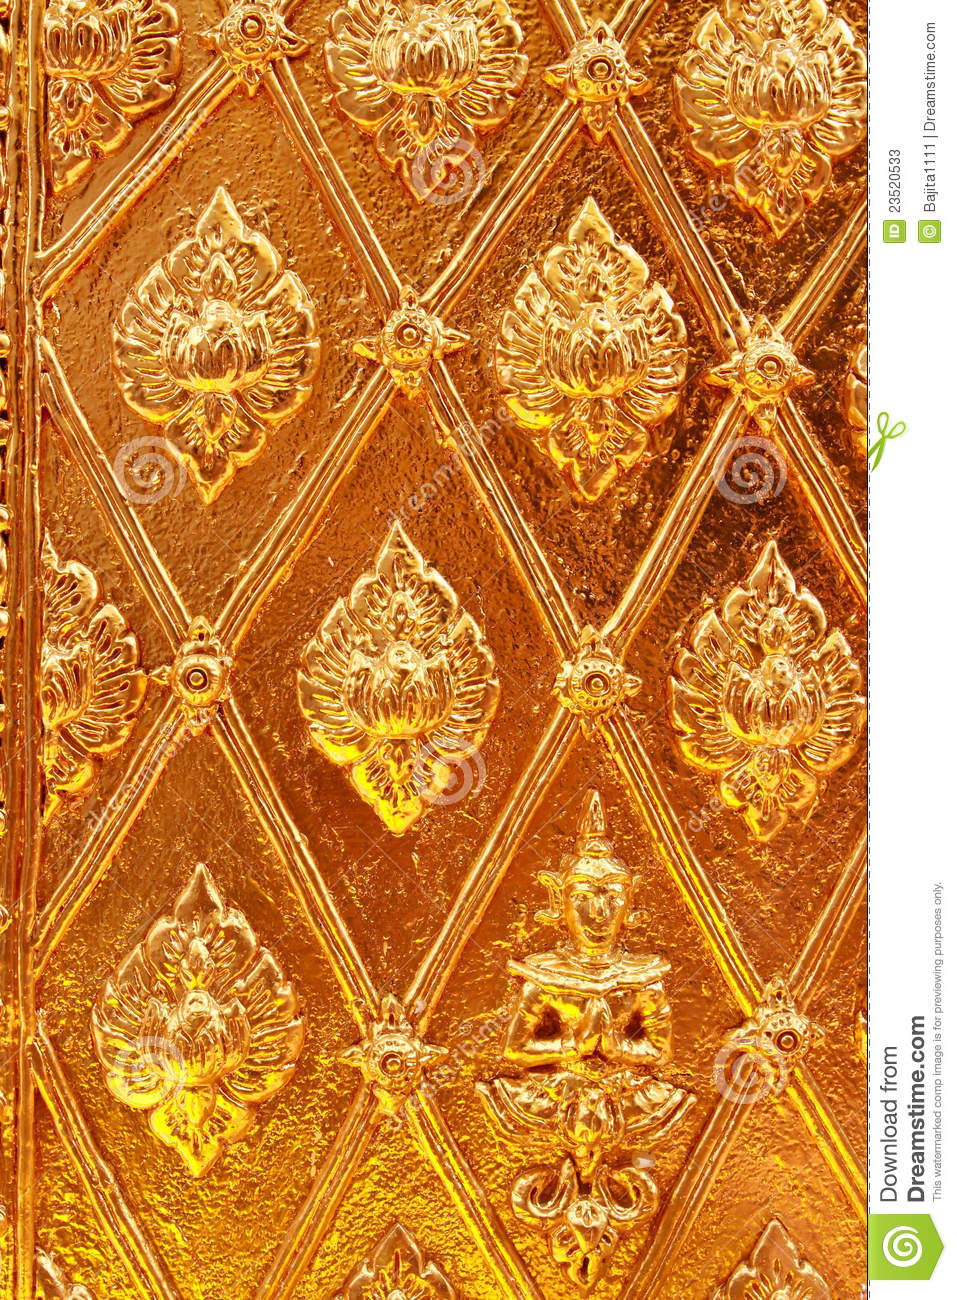 golden thai pattern design on temple wall   stock photos